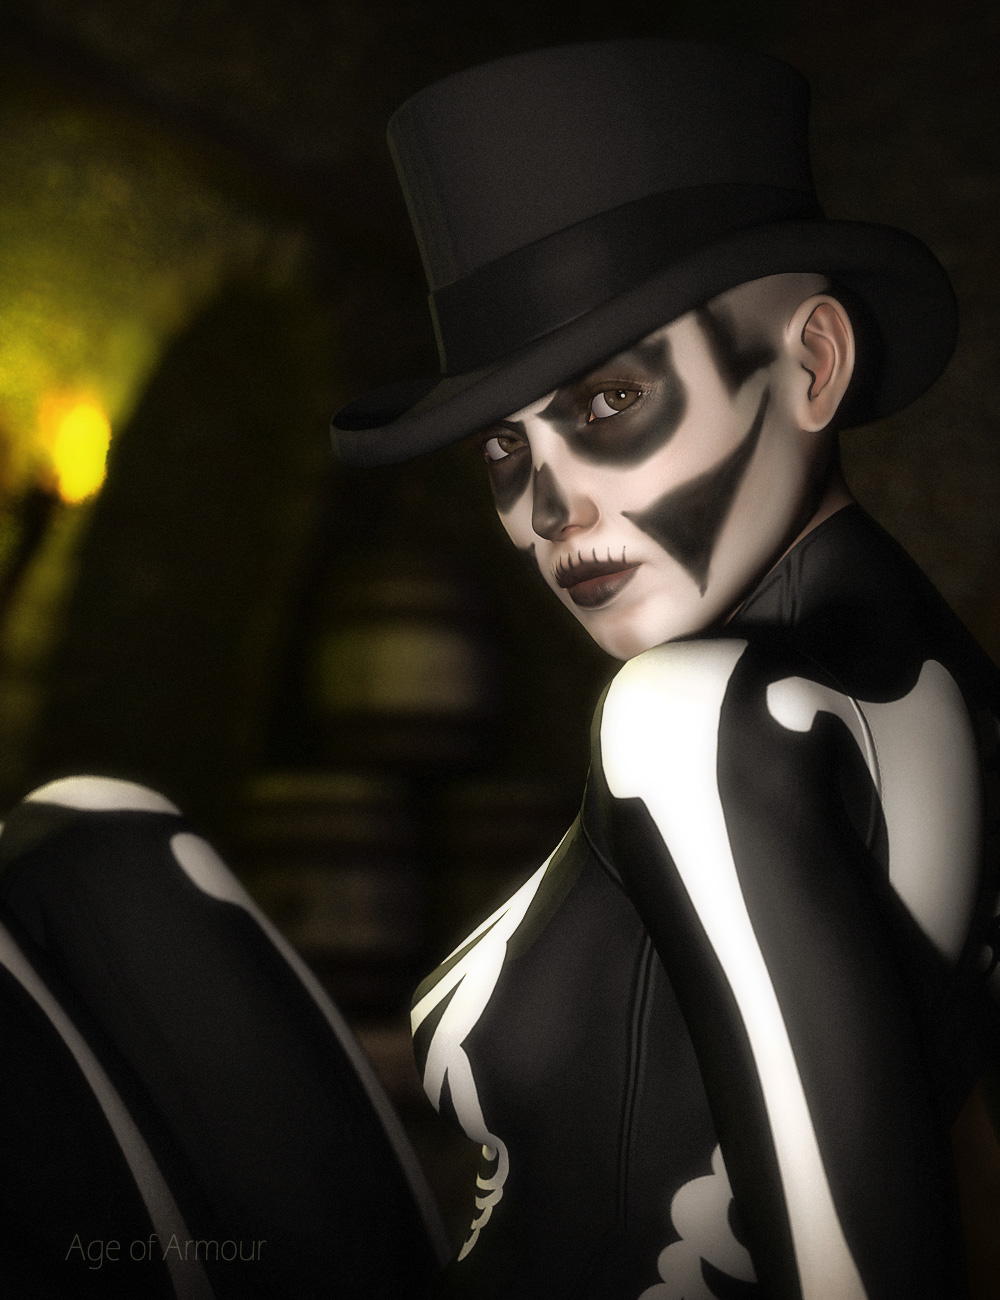 DAZ's Victoria 4 in a top hat and skeleton costume.